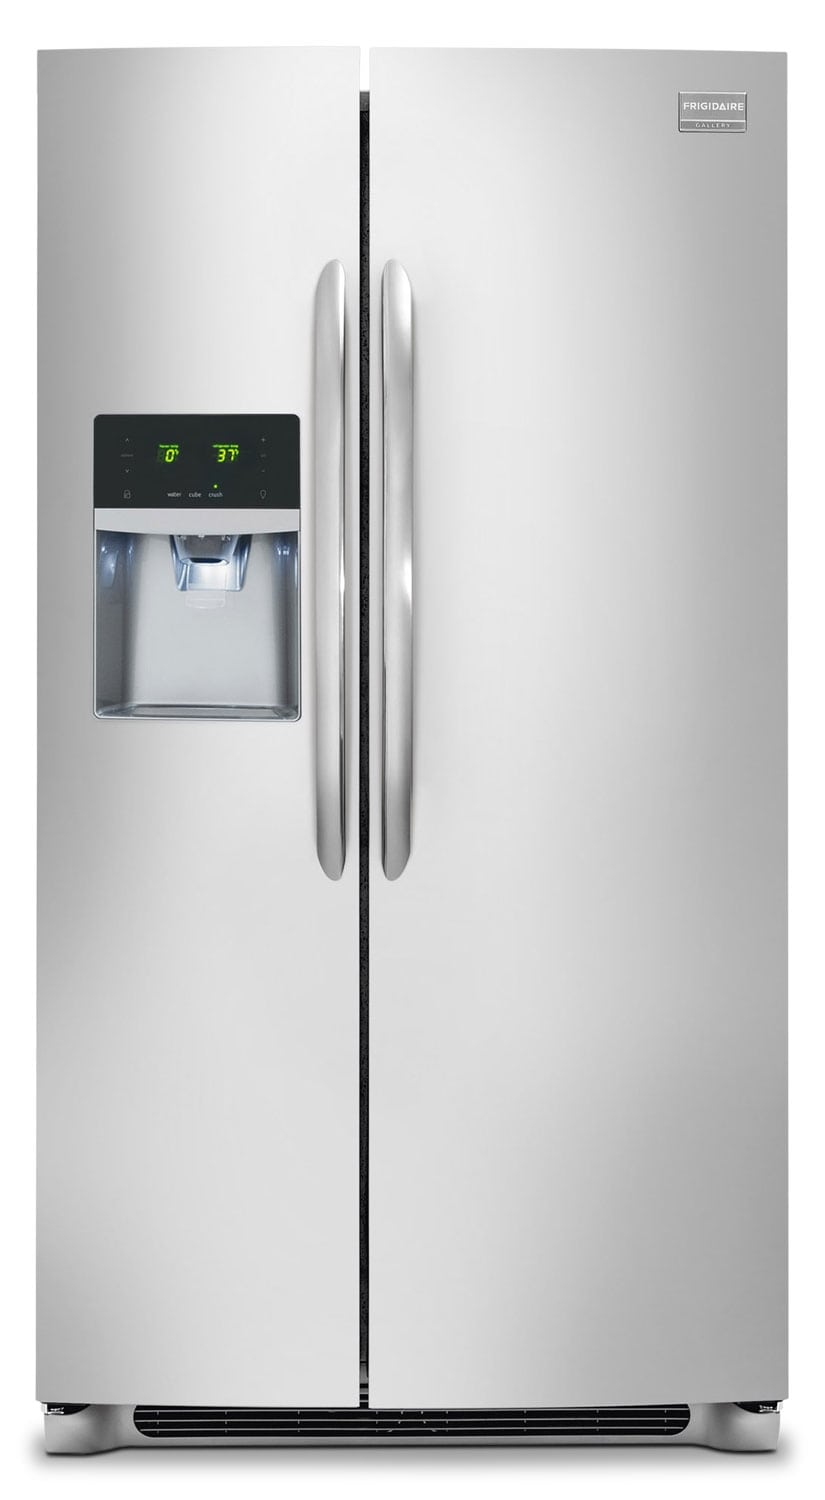 Refrigerators and Freezers - Frigidaire Gallery Stainless Steel Counter-Depth Side-by-Side Refrigerator (23 Cu. Ft.) - FGHC2355PF